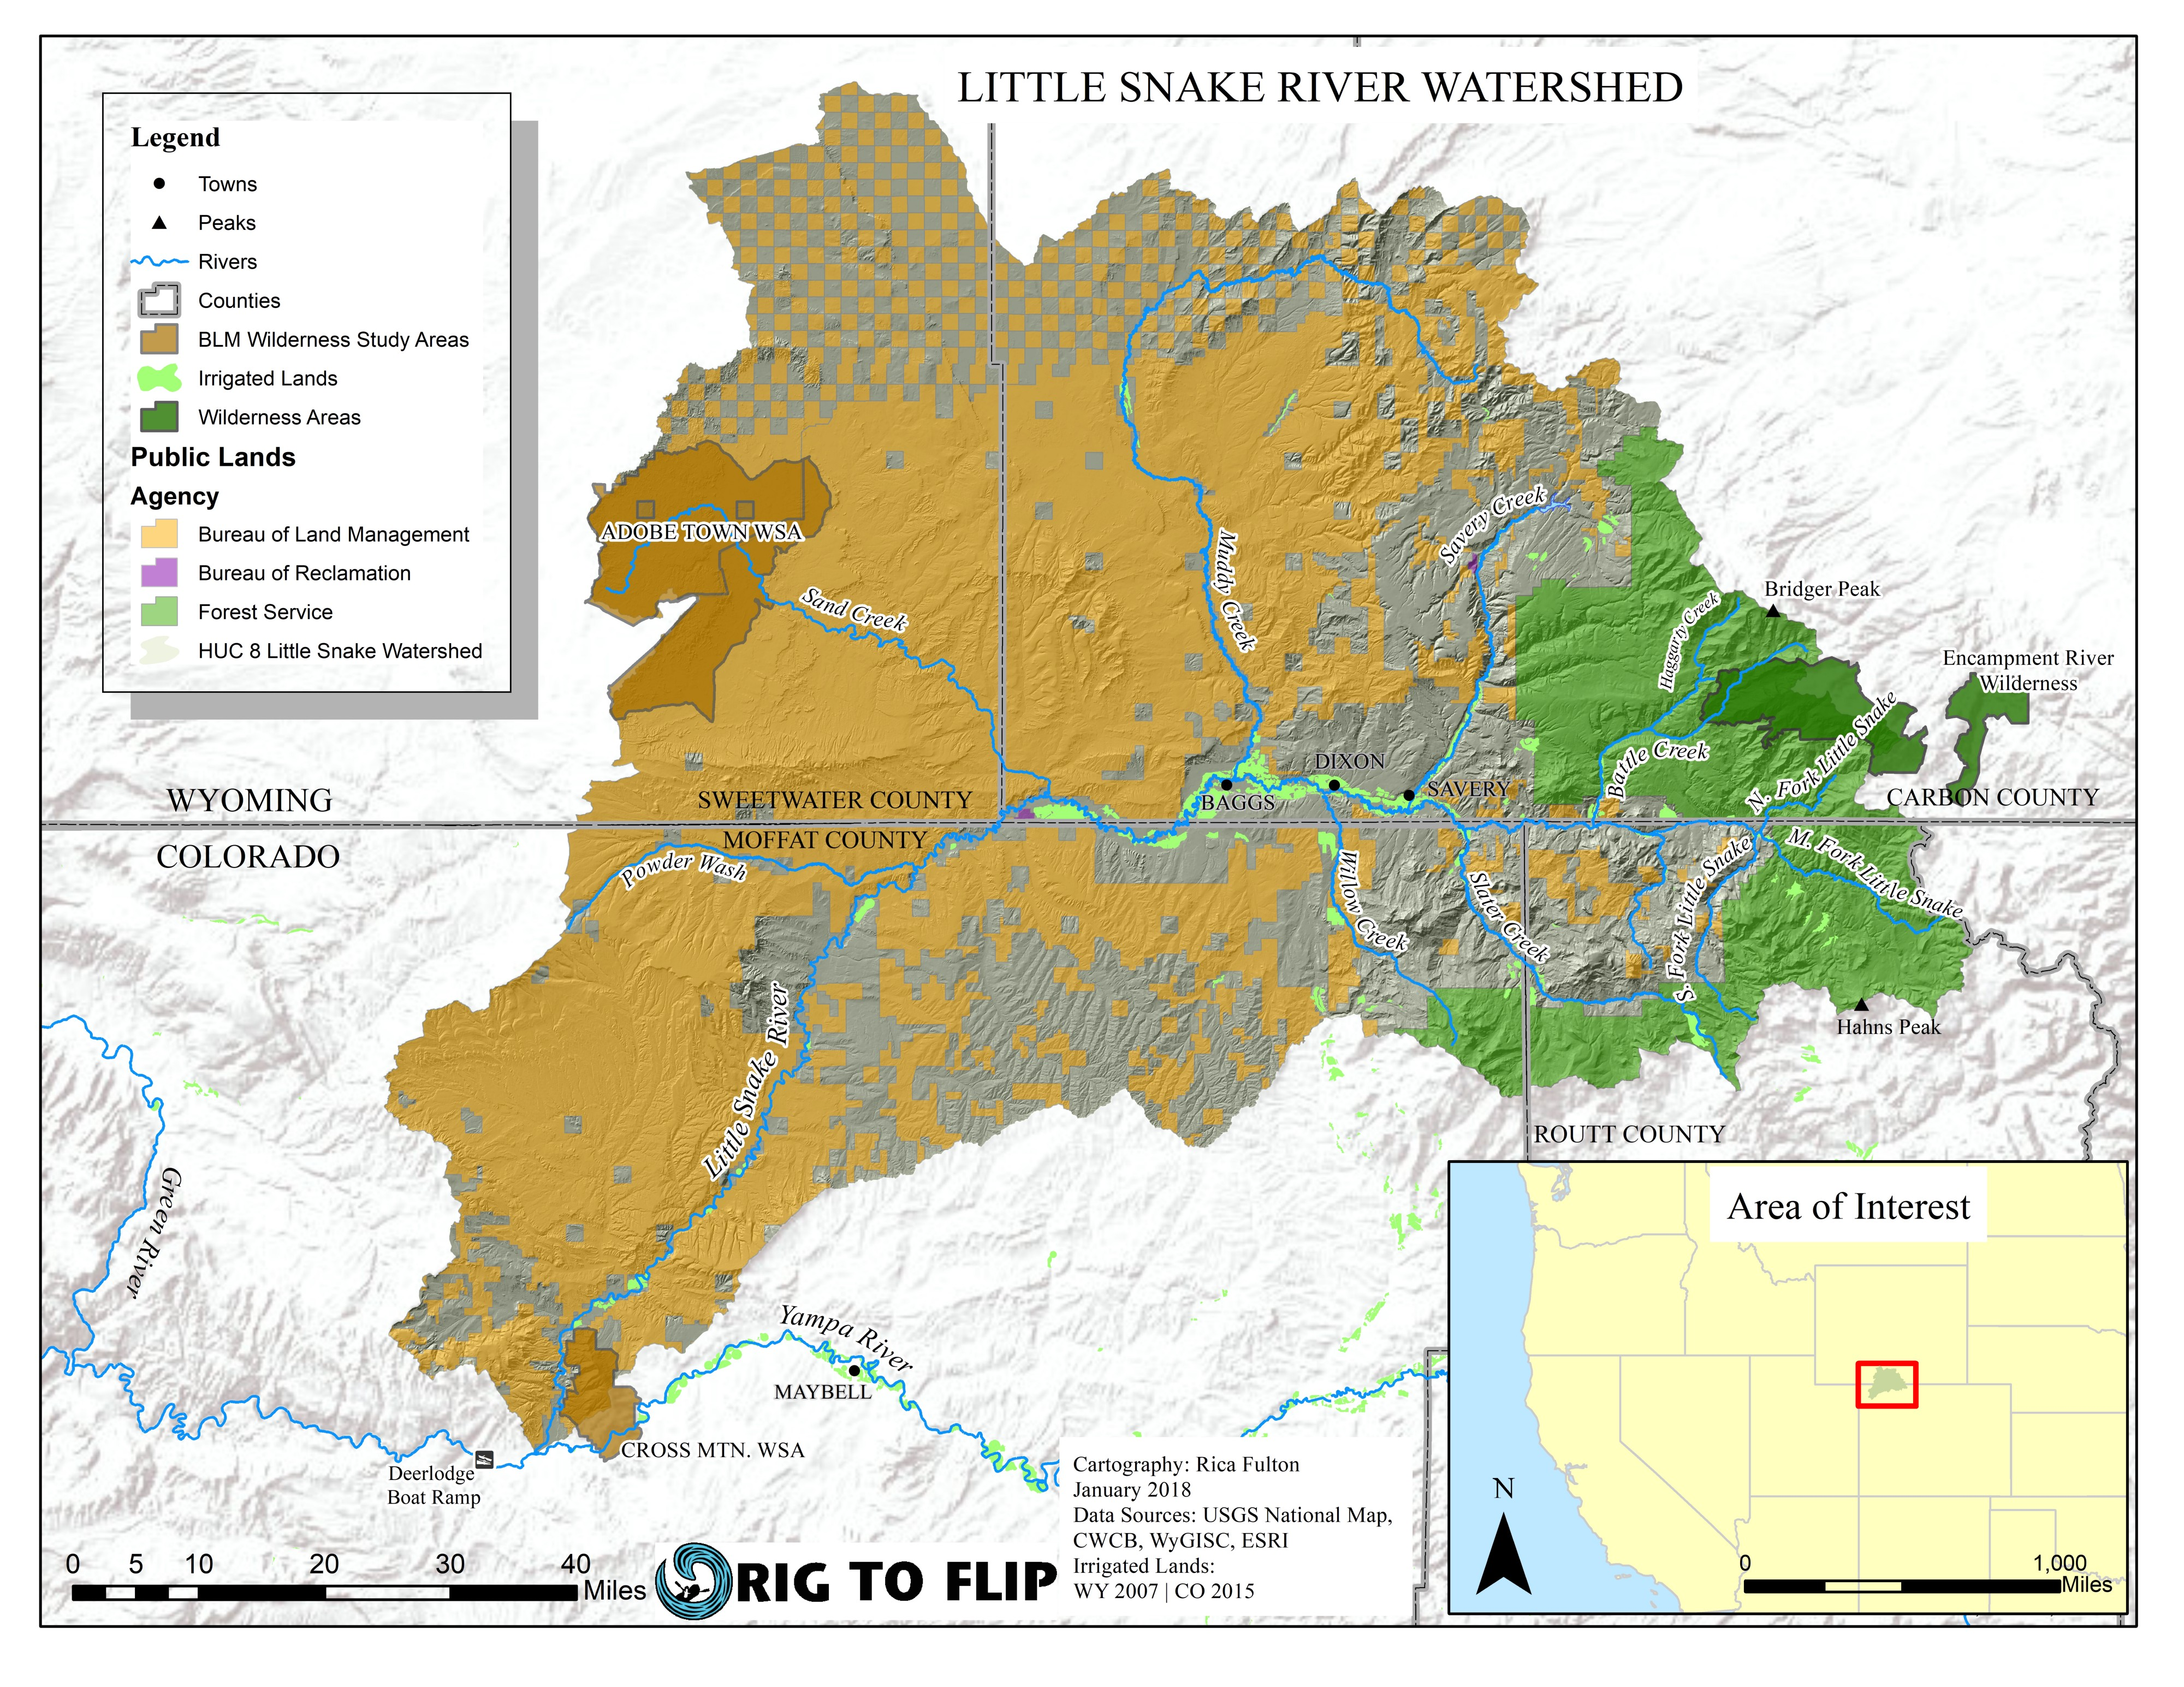 Where The West is No Longer Young - Dispatches from the ... on sierra nevada, shoshone falls, hudson river, snake river park map, yellowstone river, city of rogue river oregon map, ohio river, grand teton national park, little snake river map, columbia river, snake river unit map, missouri river, potomac river, snake river oregon map, colorado river, snake river washington map, snake island map, chesapeake bay, south fork snake river fishing map, snake river usa map, mississippi river, susquehanna river, oregon trail, cascade range, hells canyon rafting map, snake river on us map, hells canyon river map, snake river on a map, snake river mn map, jackson hole, snake river map north america, jackson hole snake river map, salmon river, snake river canyon, snake river idaho map, hells canyon, snake river plain map, snake river map with states, snake river bay map,